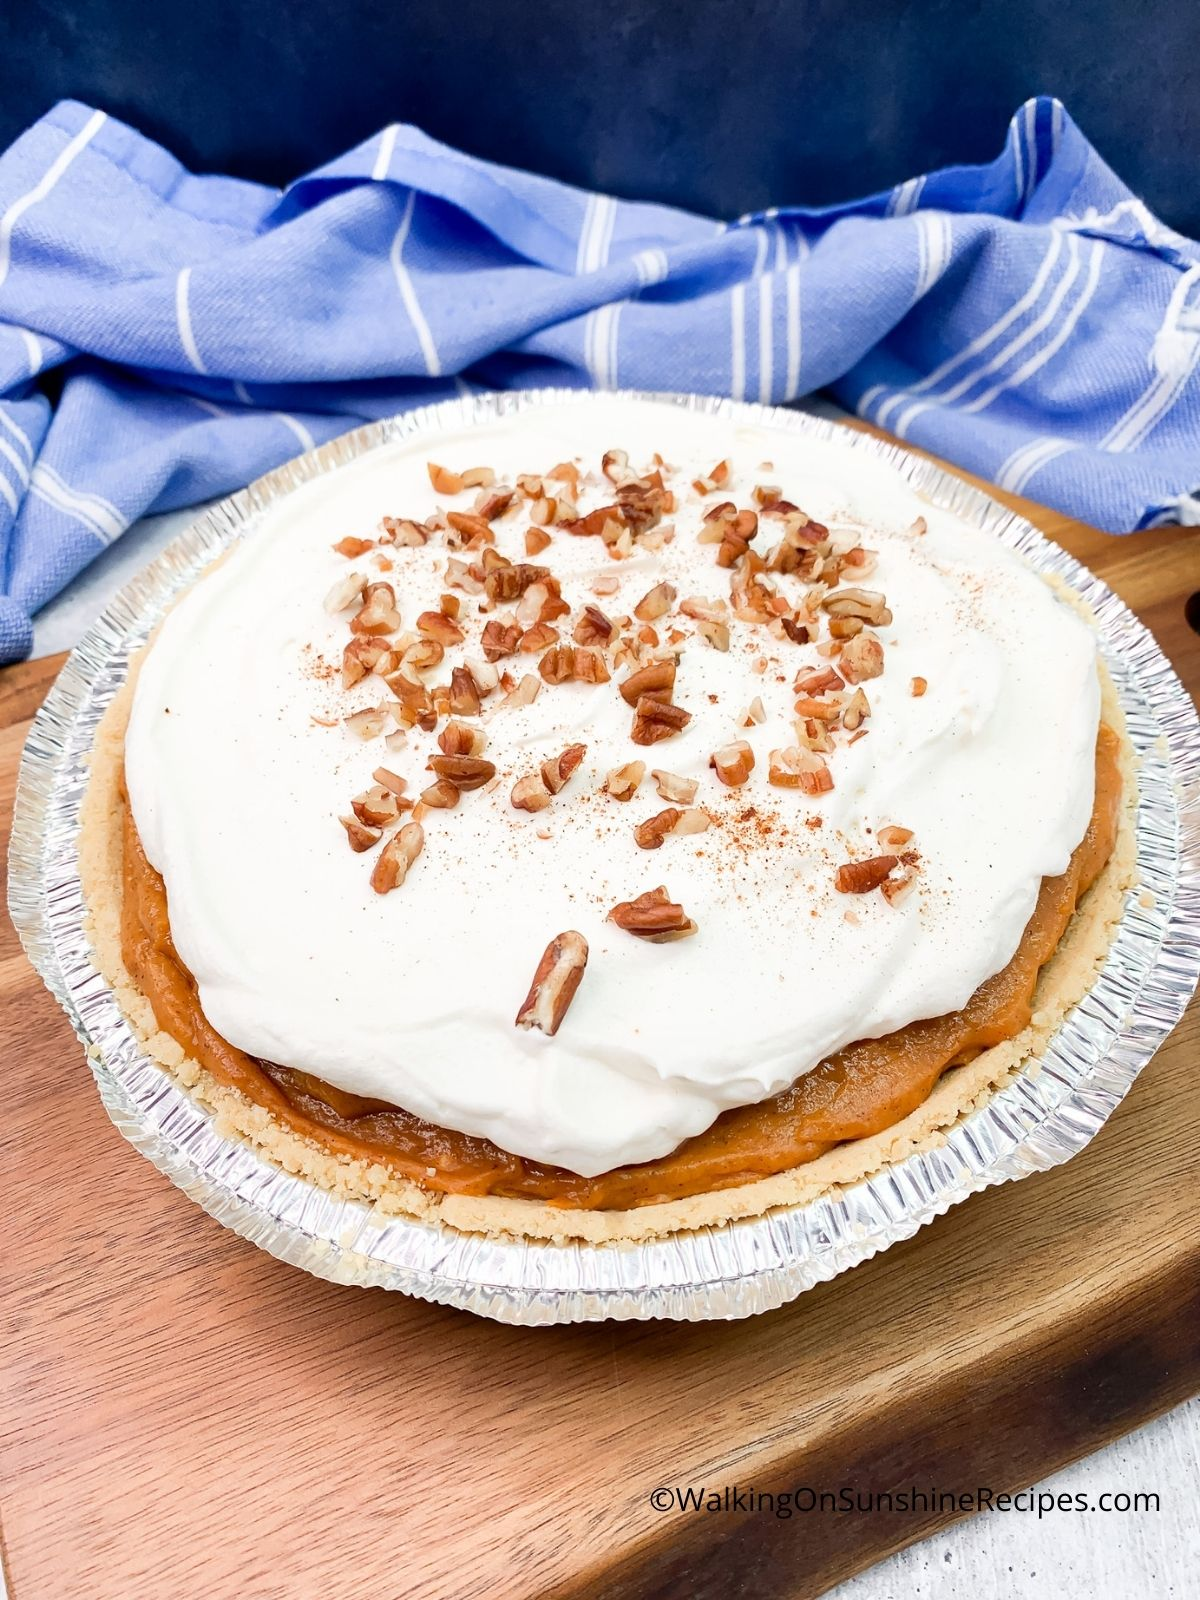 pumpkin cheesecake with chopped pecans on top.